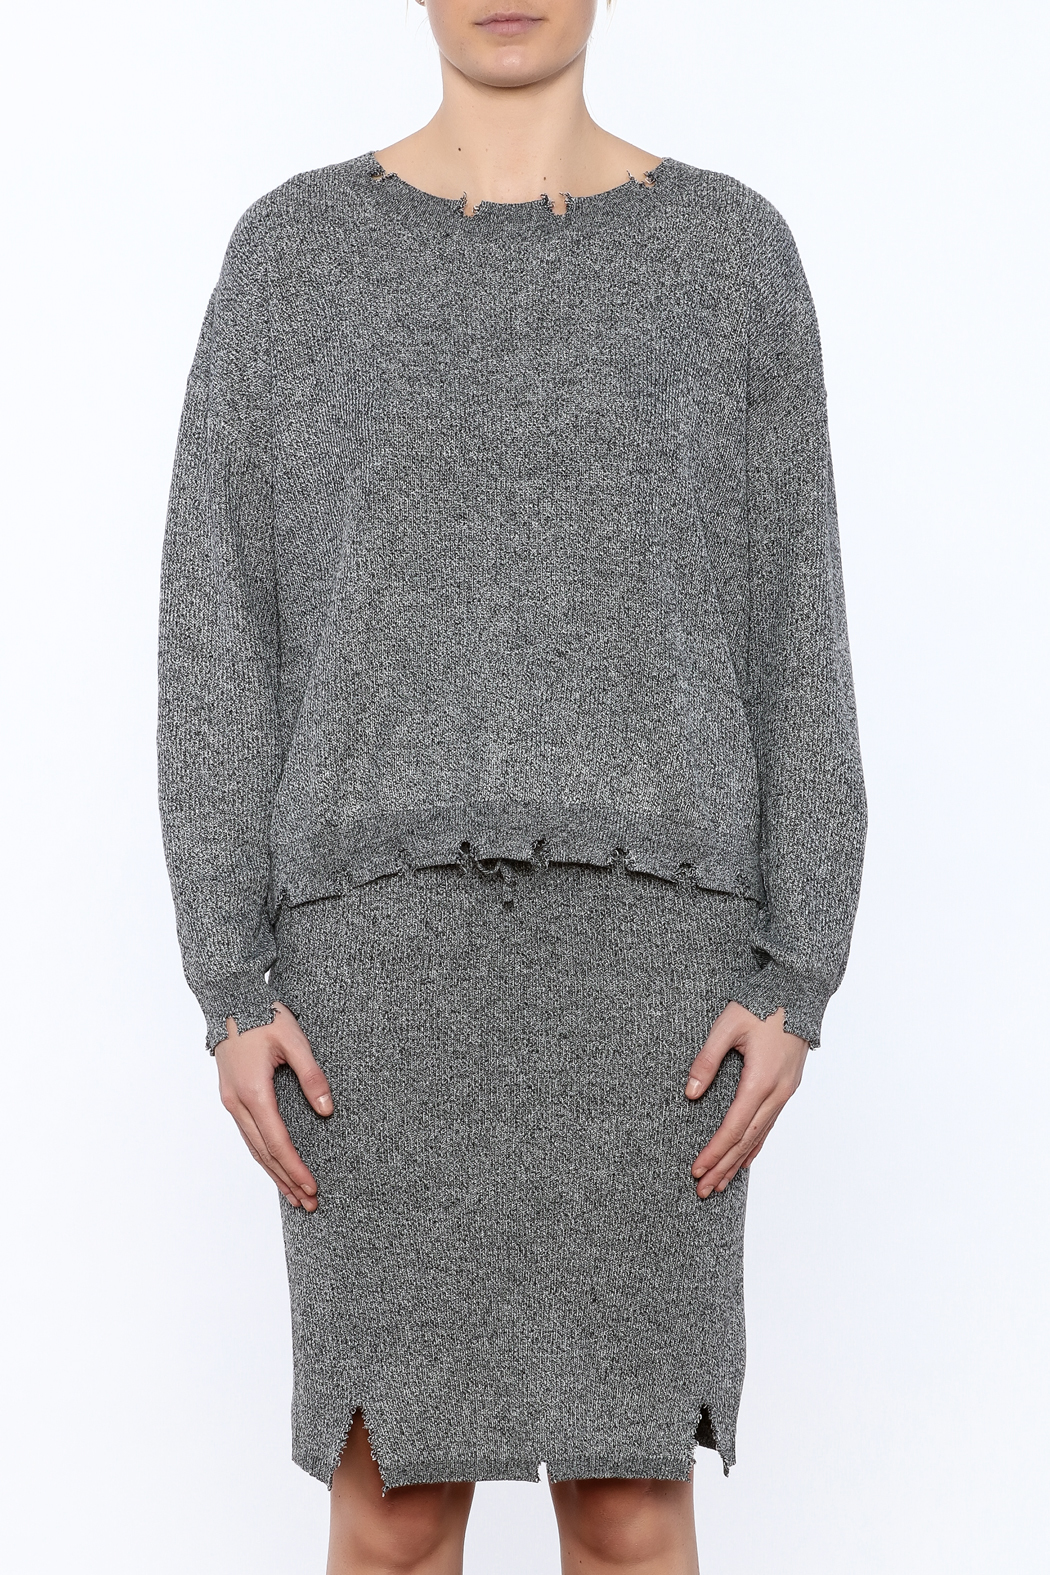 POL Waist Length Distressed Sweater - Side Cropped Image